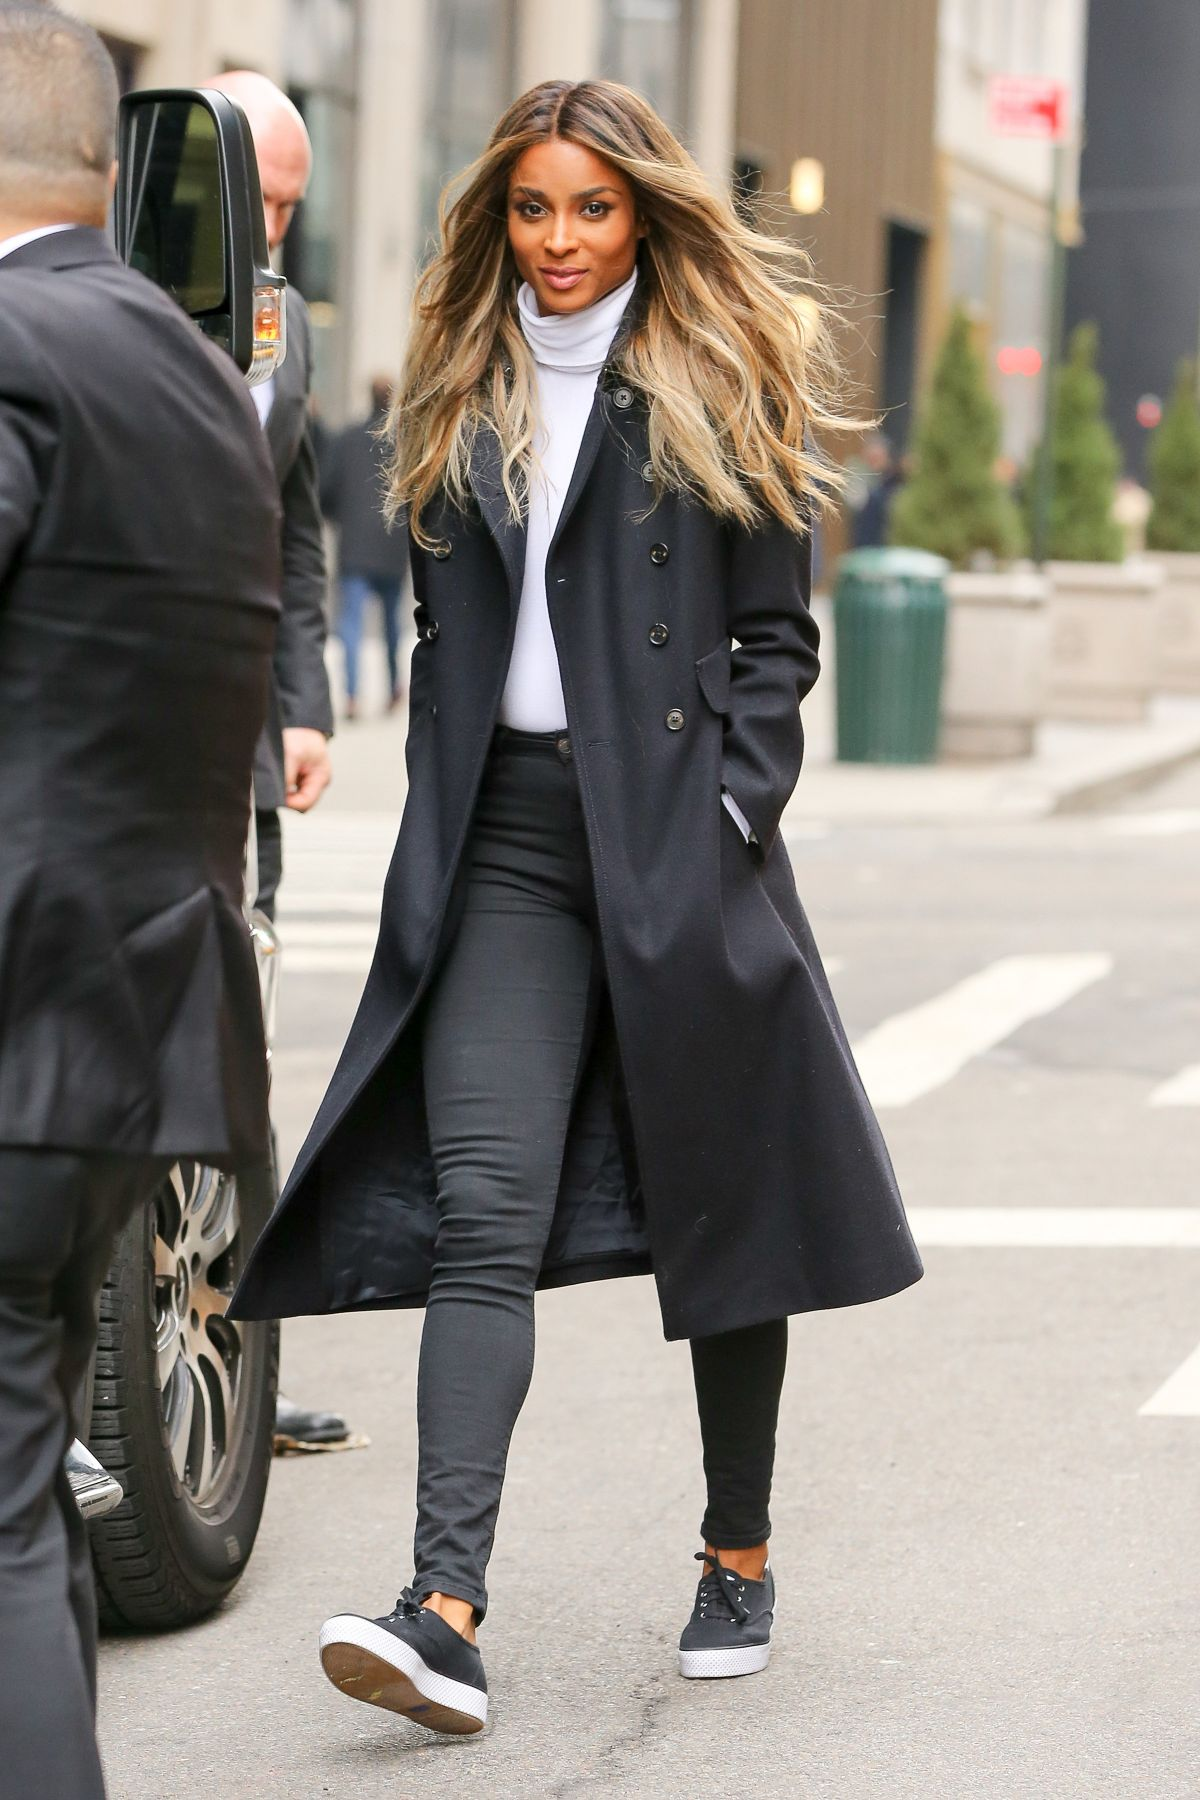 ciara leaves polo store in new york 02112016 hawtcelebs